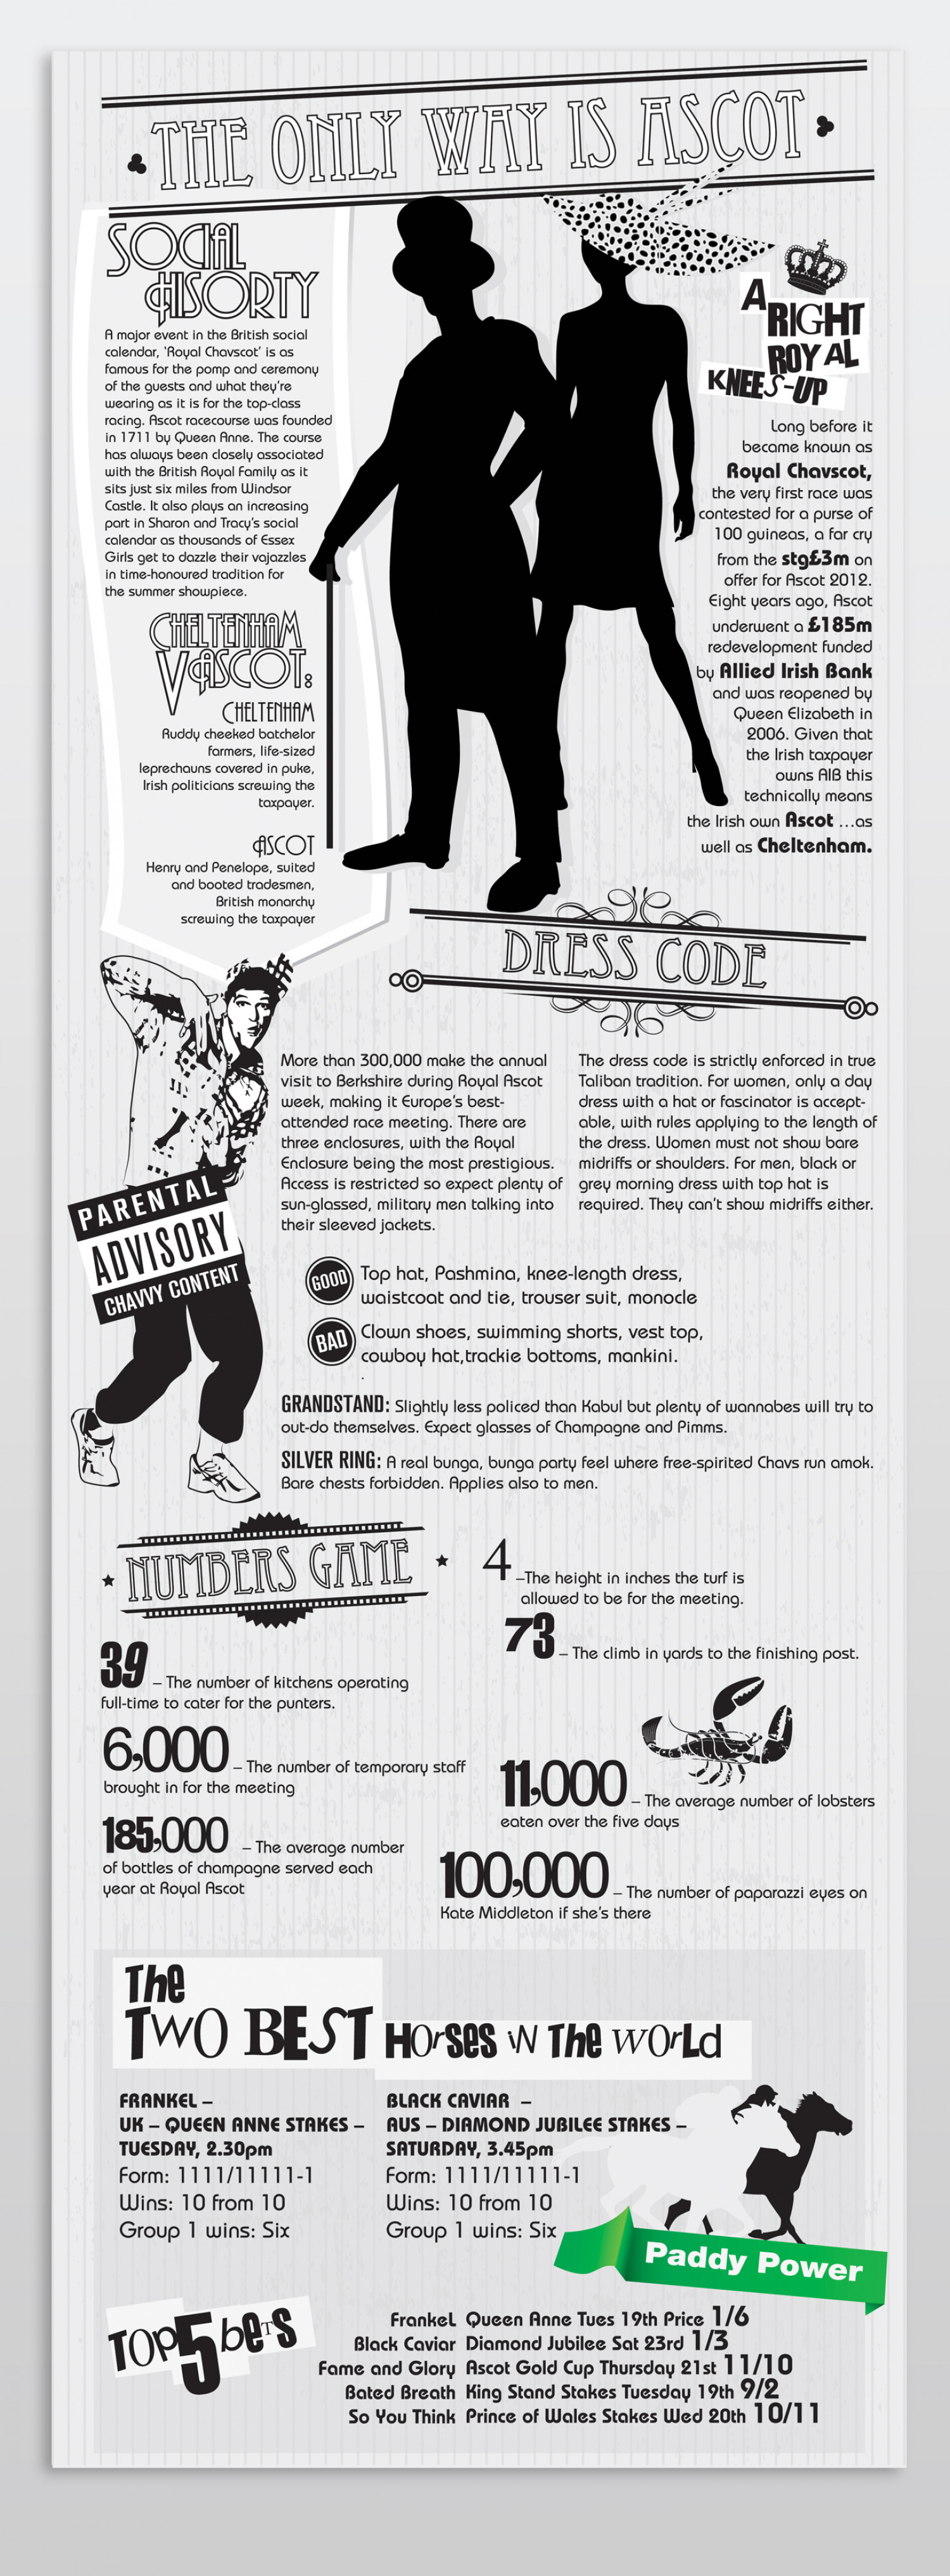 The Only Way Is Ascot Infographic